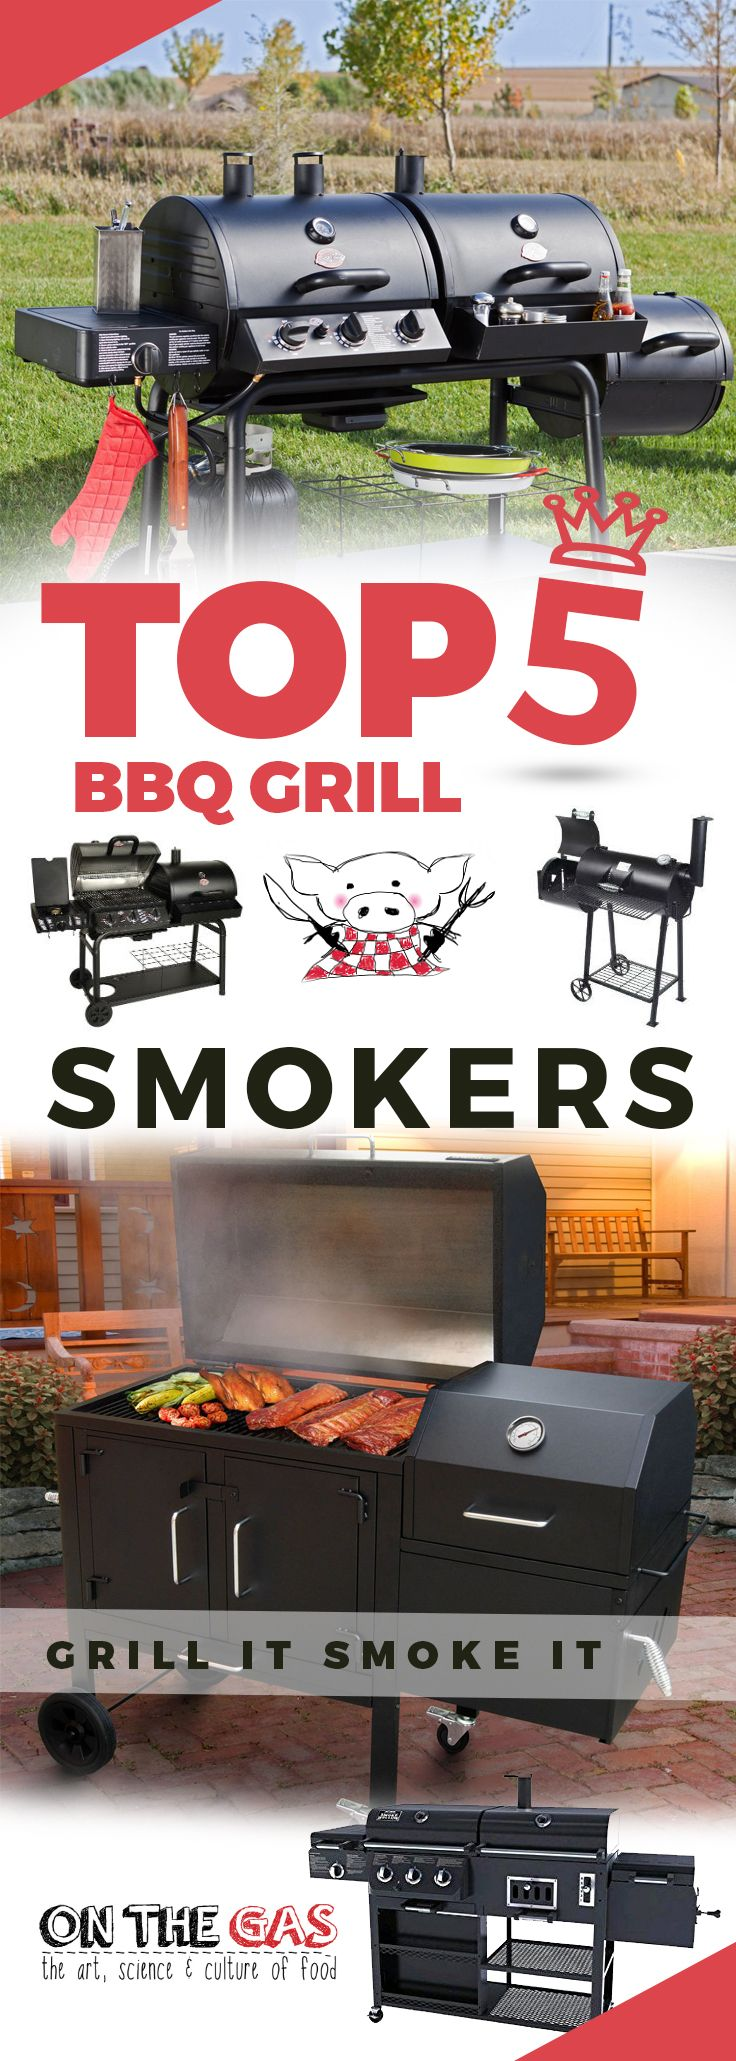 Best Gas Grill 2020.Top 5 Bbq Grill Smokers Reviewed 2019 2020 Gas Grill Smoker